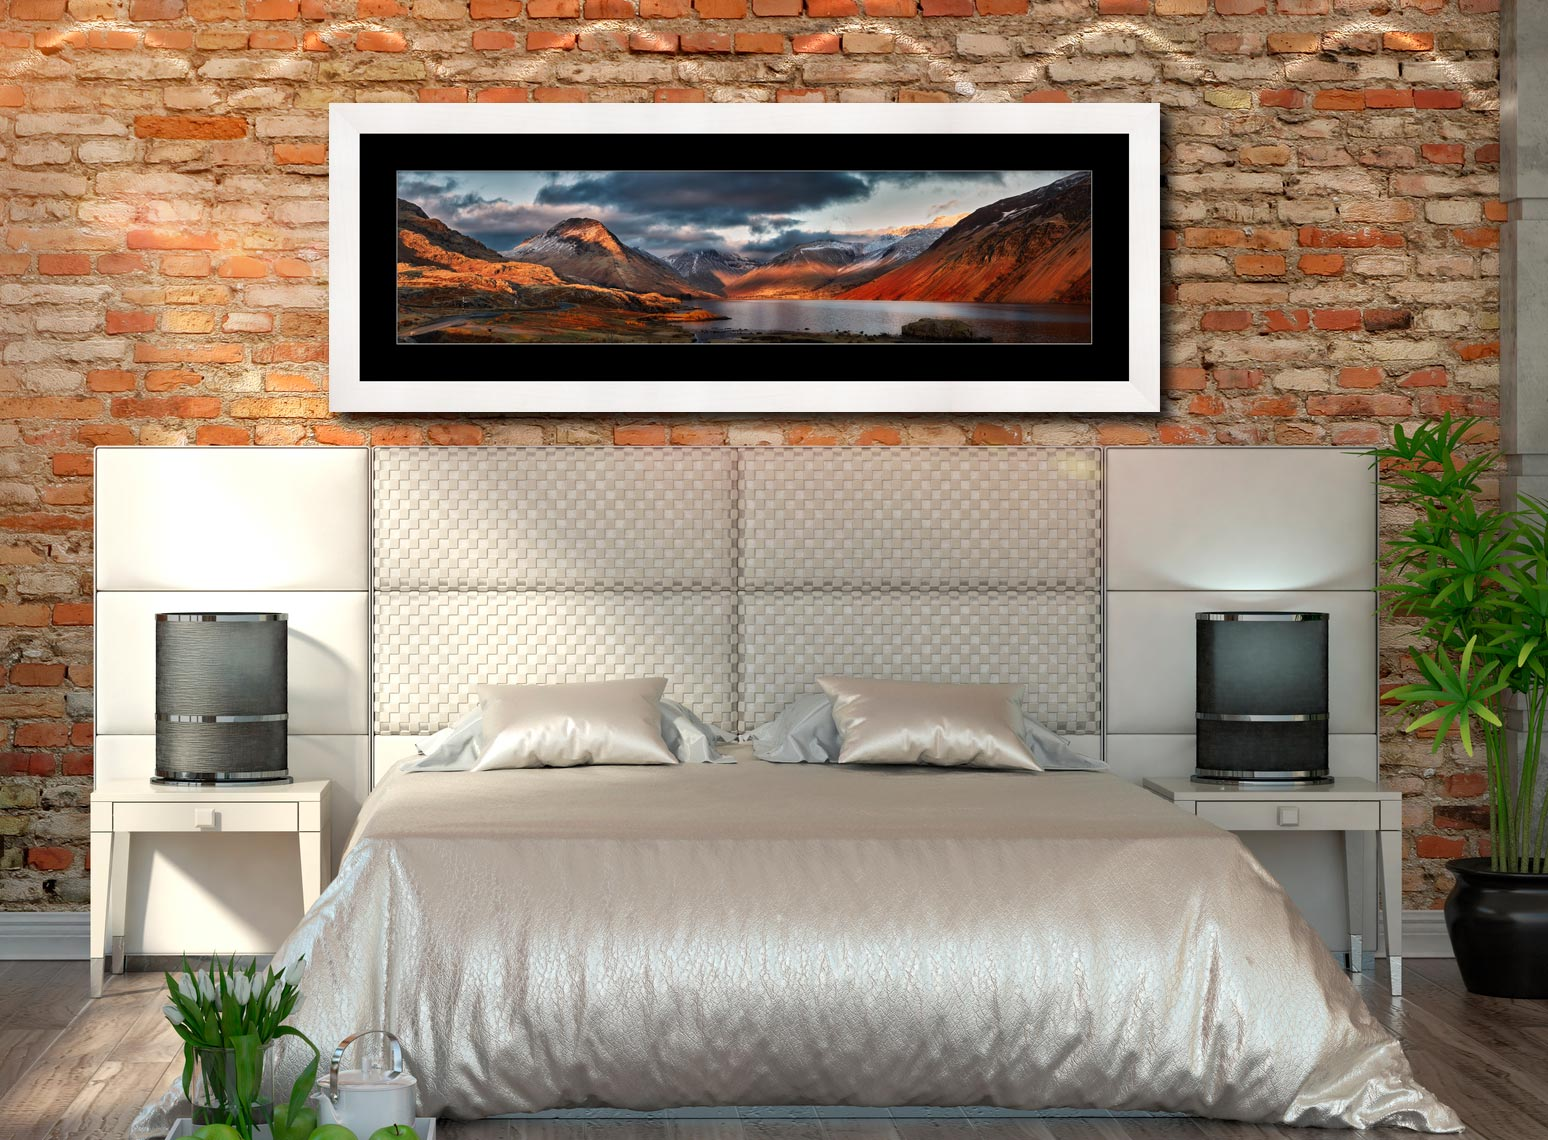 Winter Sun Over Wast Water - Framed Print with Mount on Wall